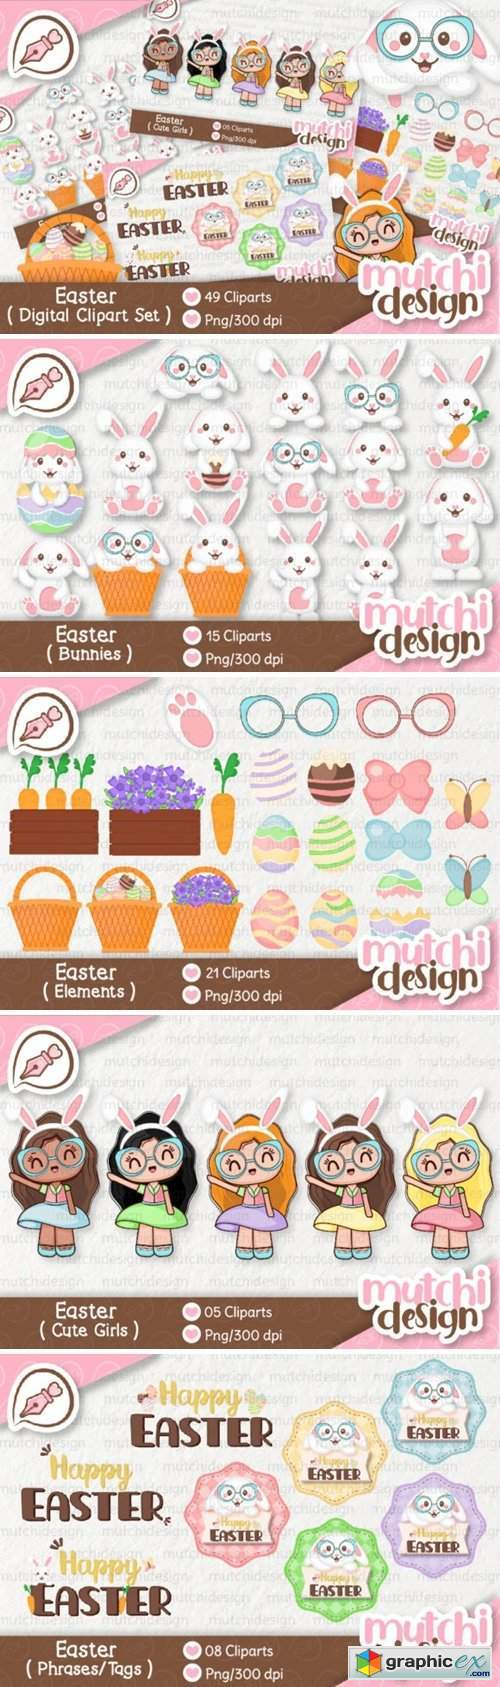 Easter Complete Cute Kit